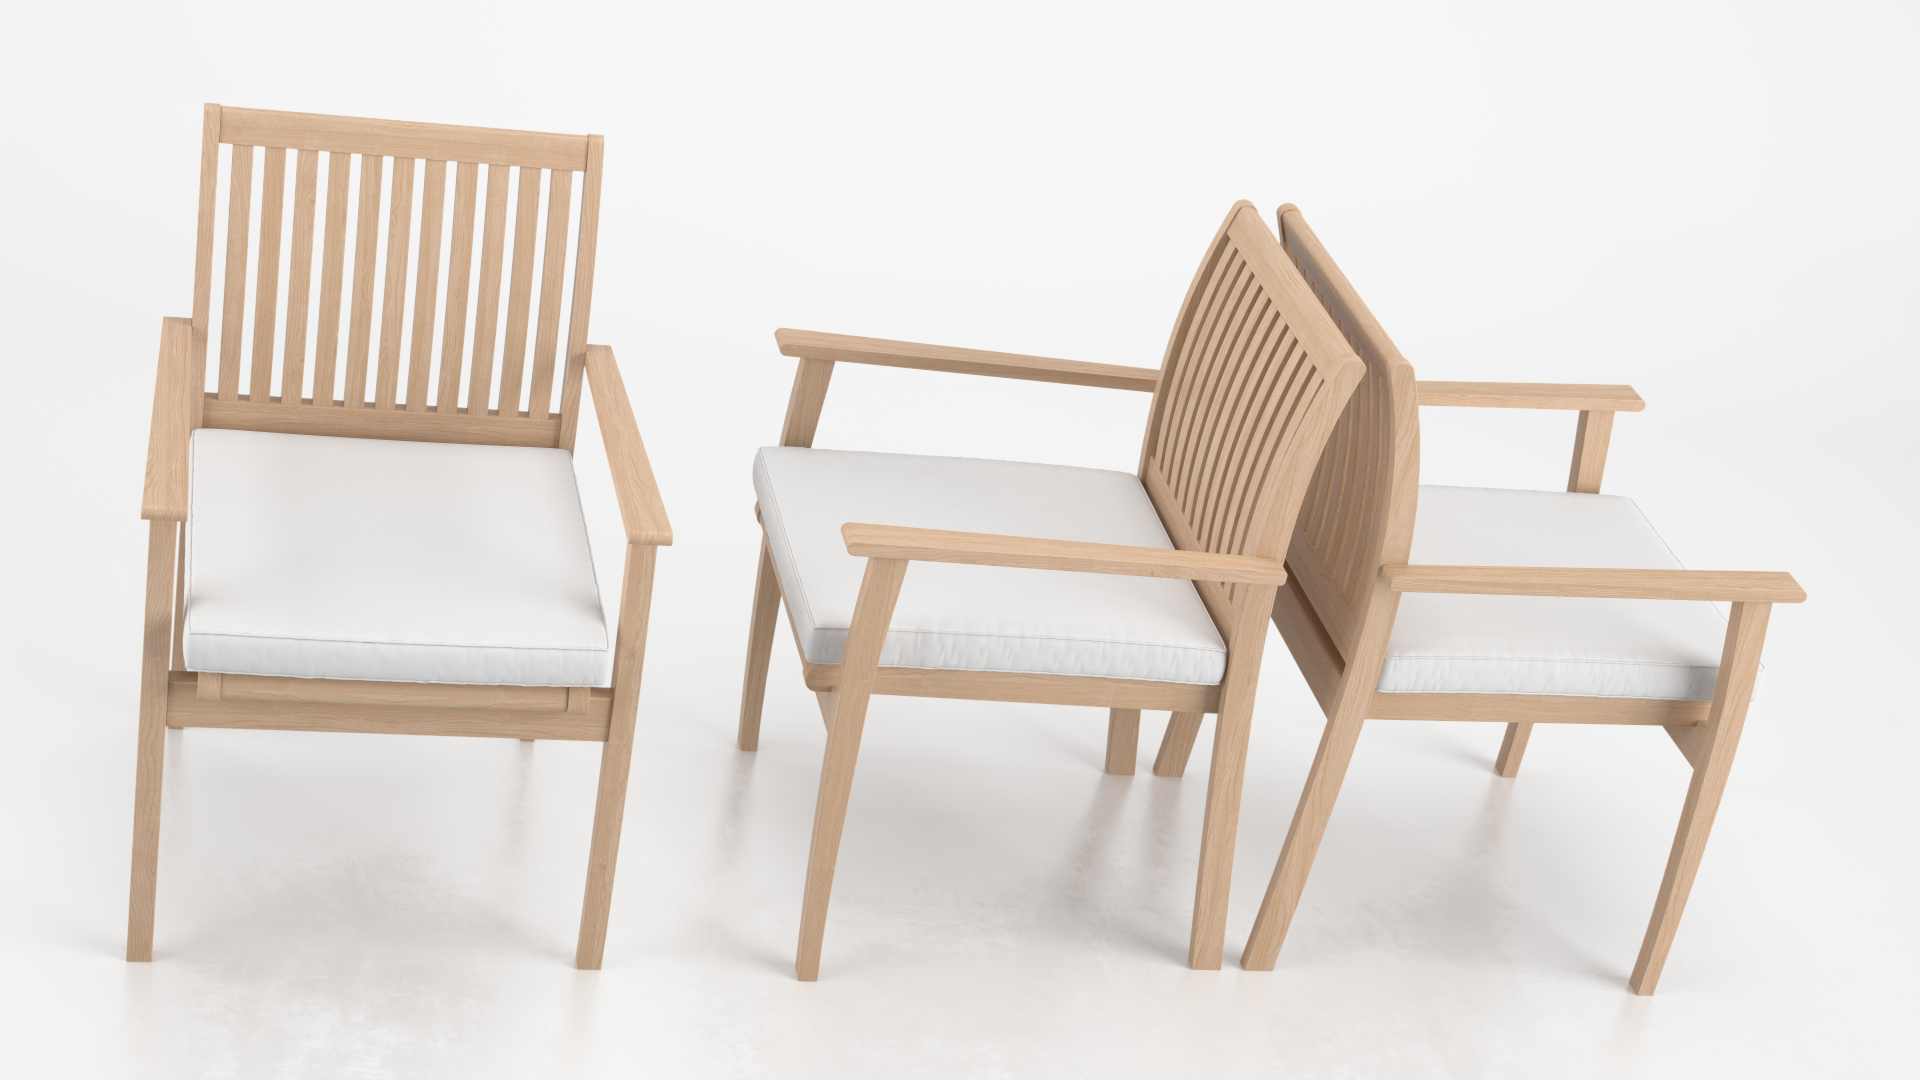 StirlingStacking_Armchair_WhiteSet_01_0006